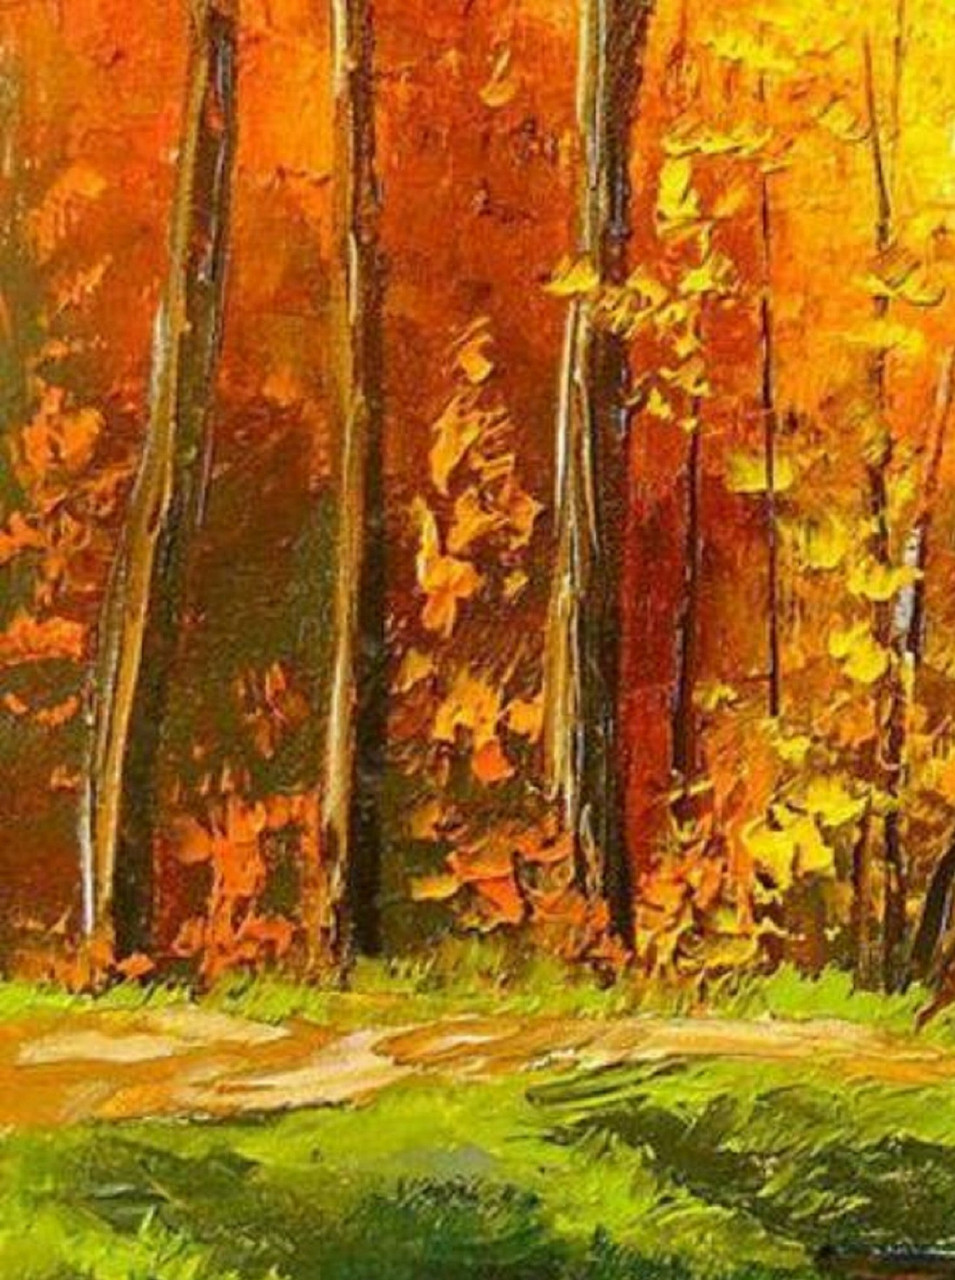 Leaf image brown wooden bridge in forest painting image nature,. Buy Red Forest Trees Painting Handmade Painting By Narendra Panchal Code Art 4772 49496 Paintings For Sale Online In India